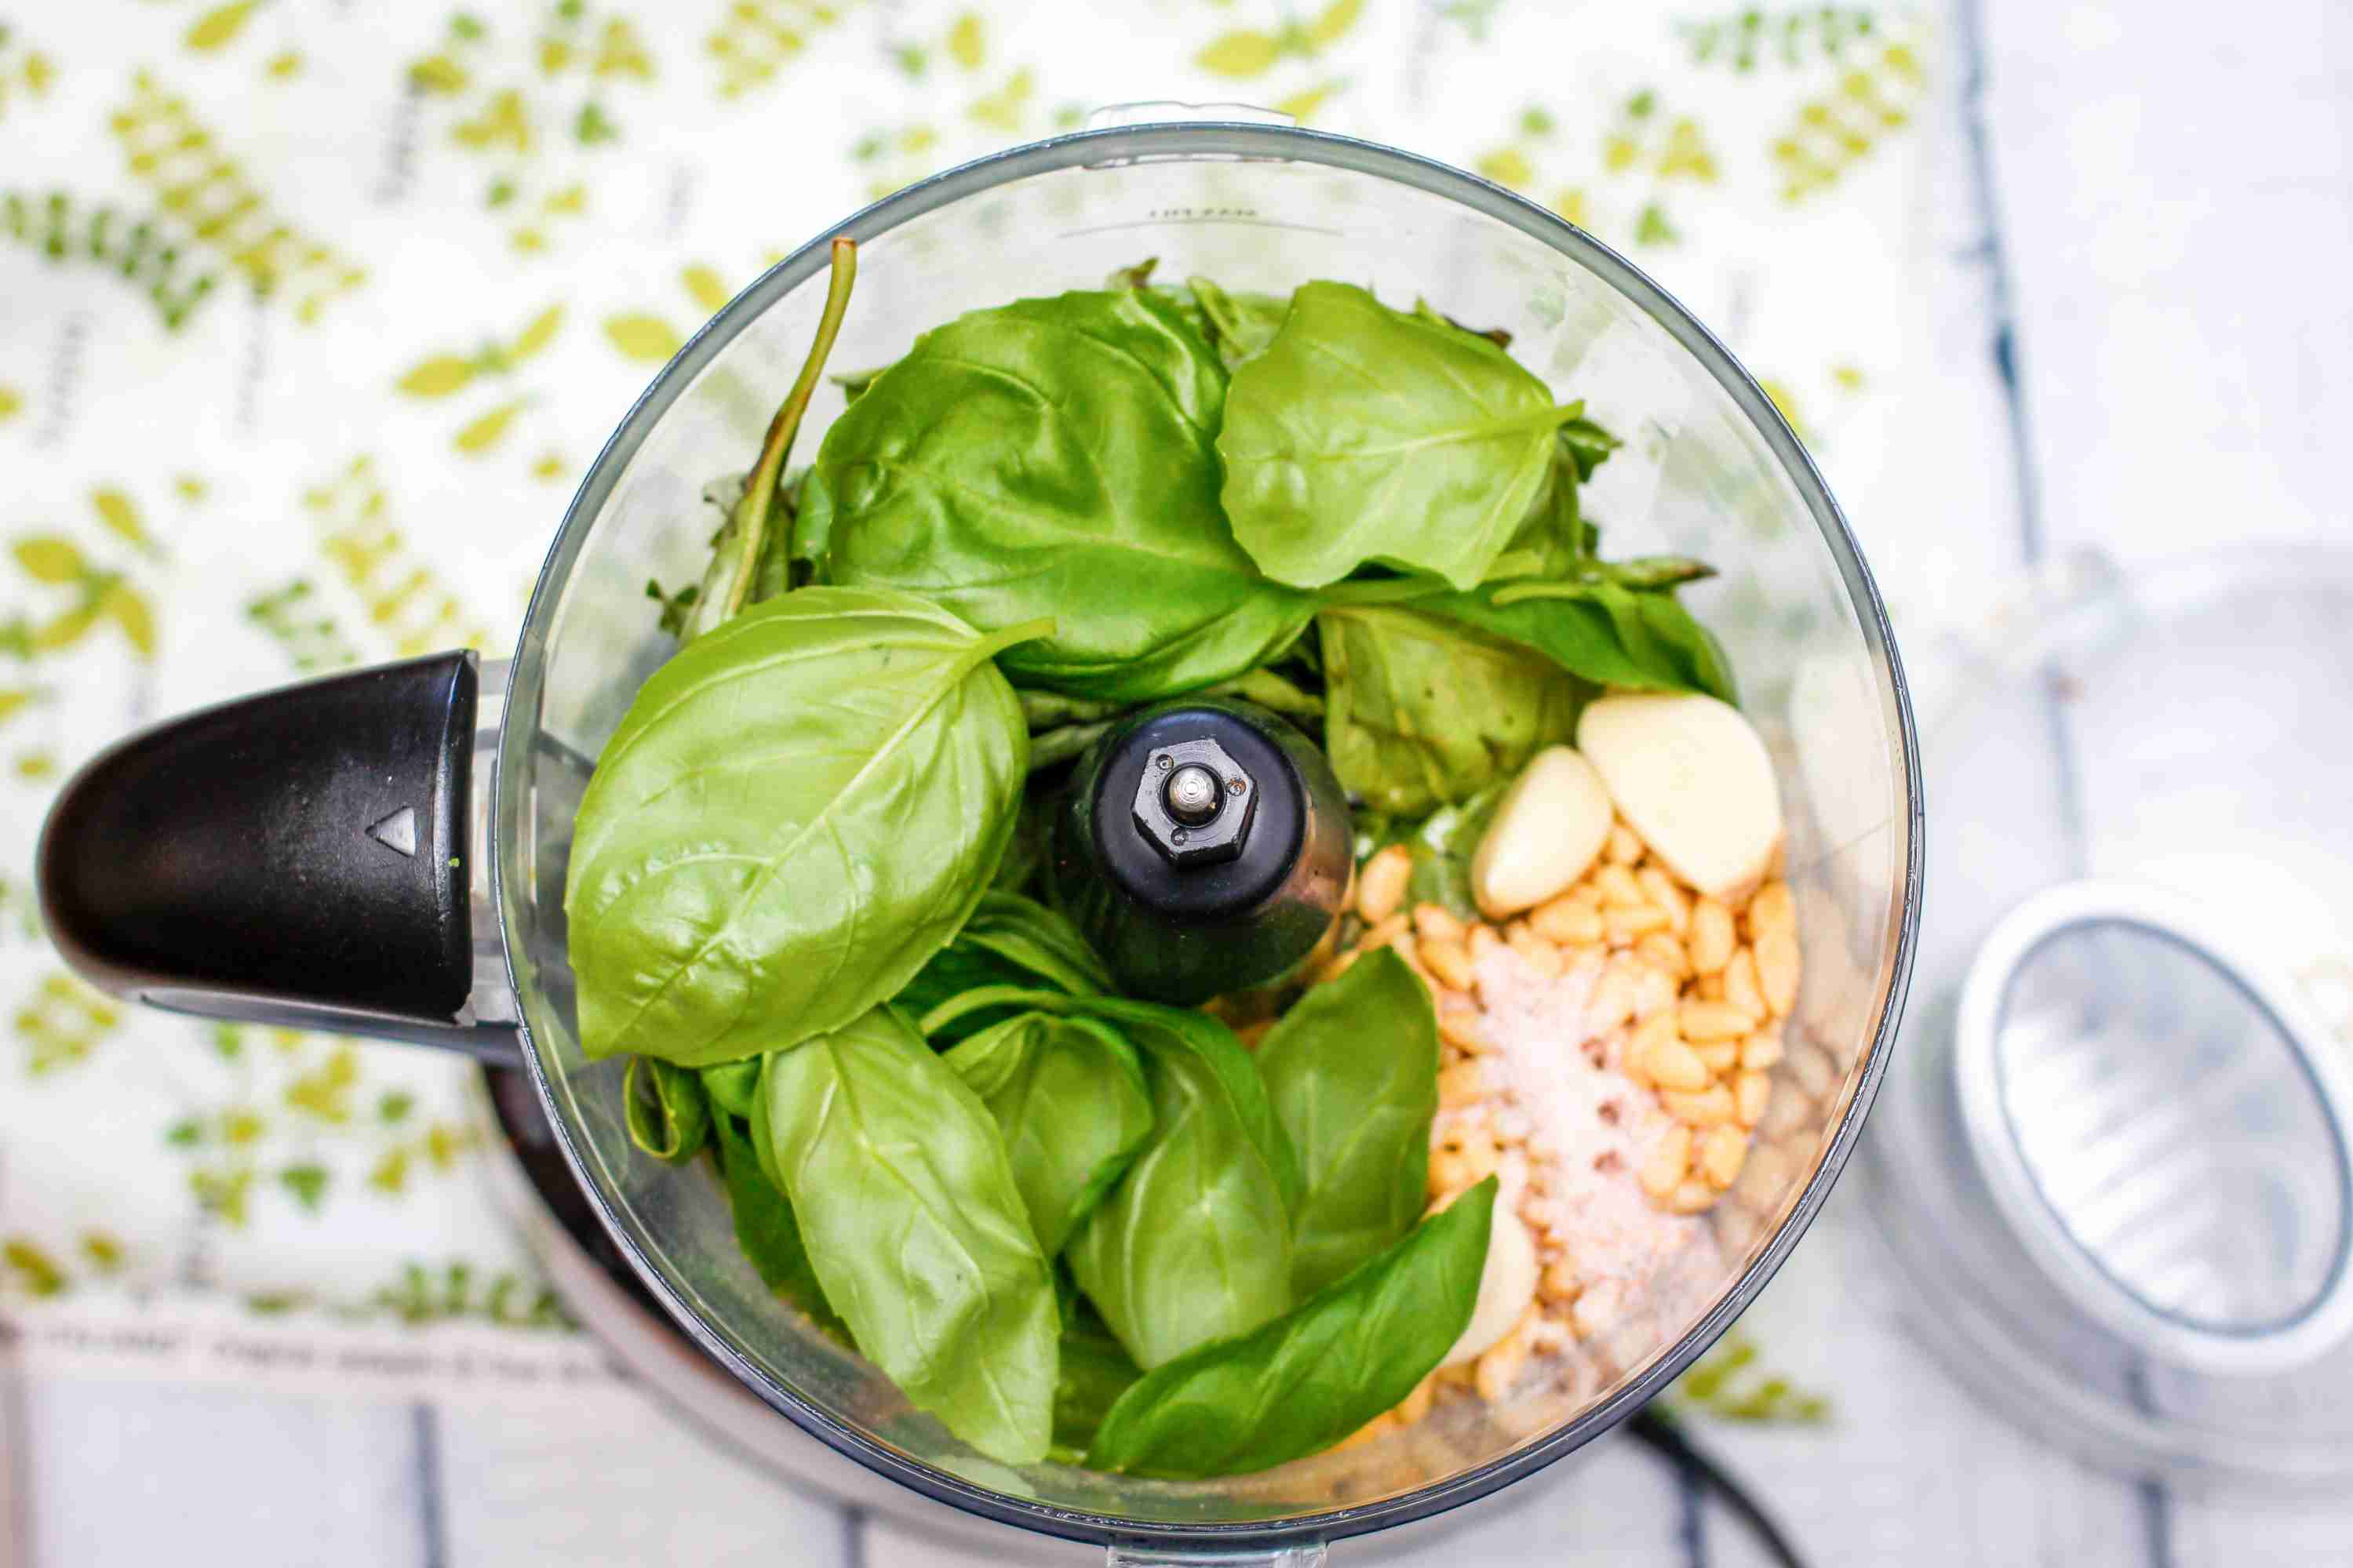 Basil, garlic, and pine nuts in a food processor for pesto